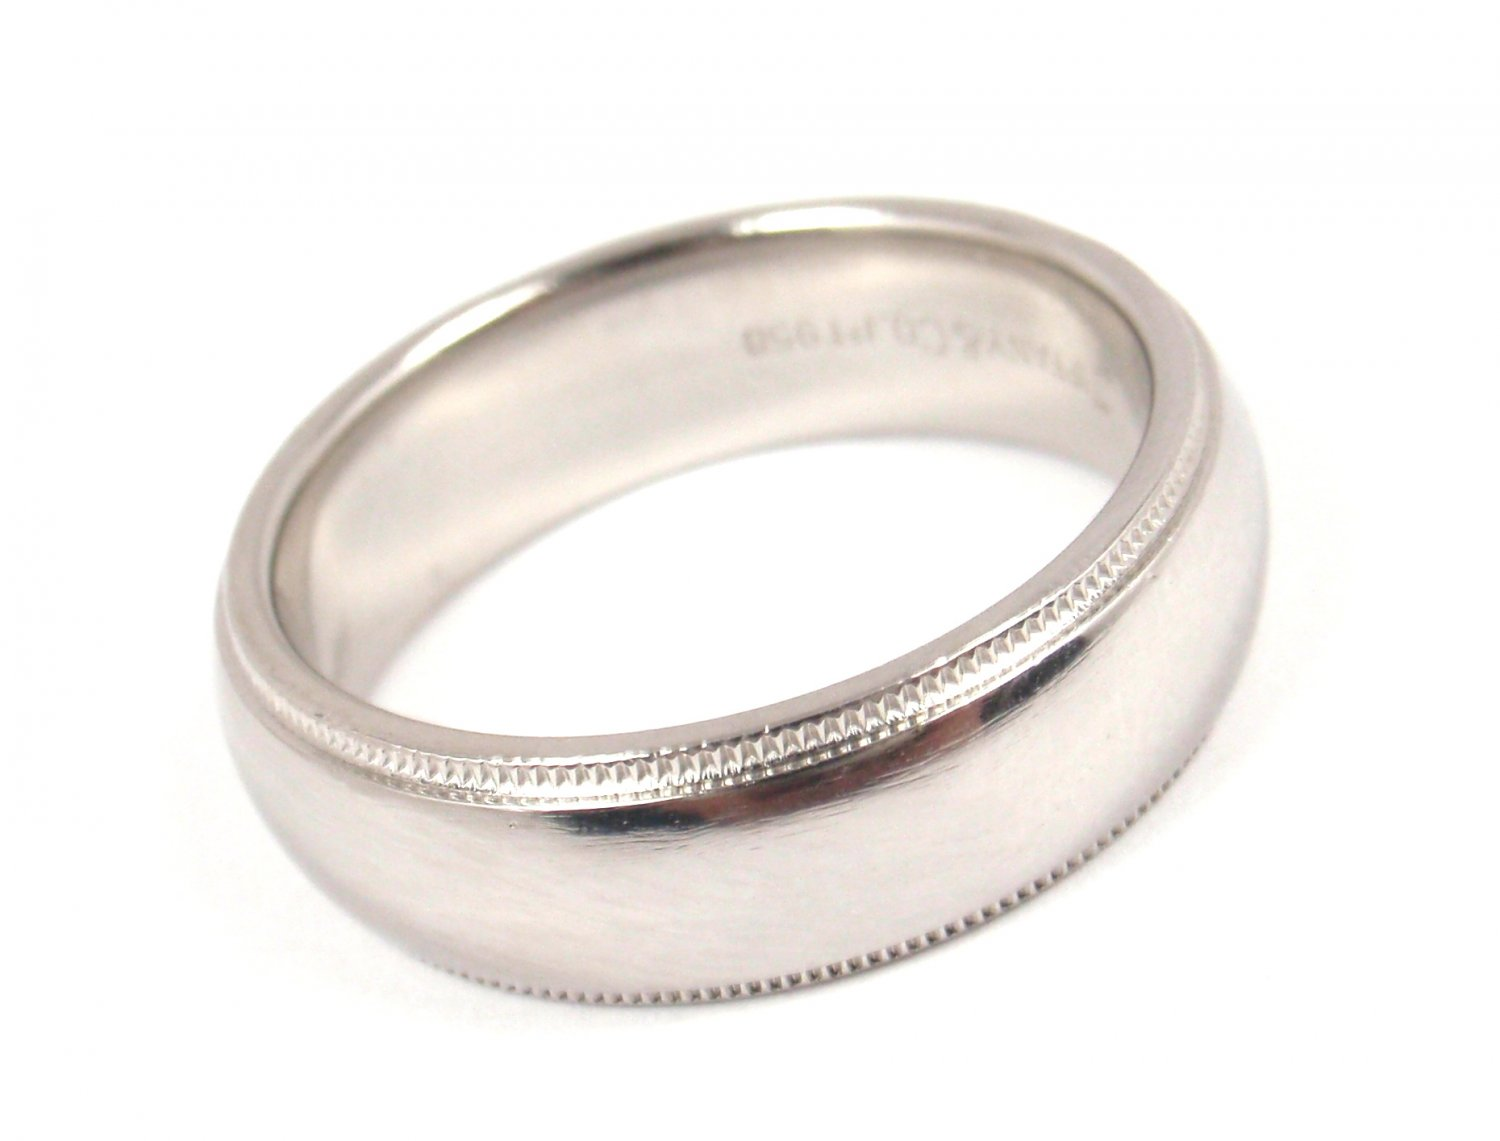 Tiffany & Co 6mm Platinum Milgrain Wedding Band Ring Size 8 Retail $3160